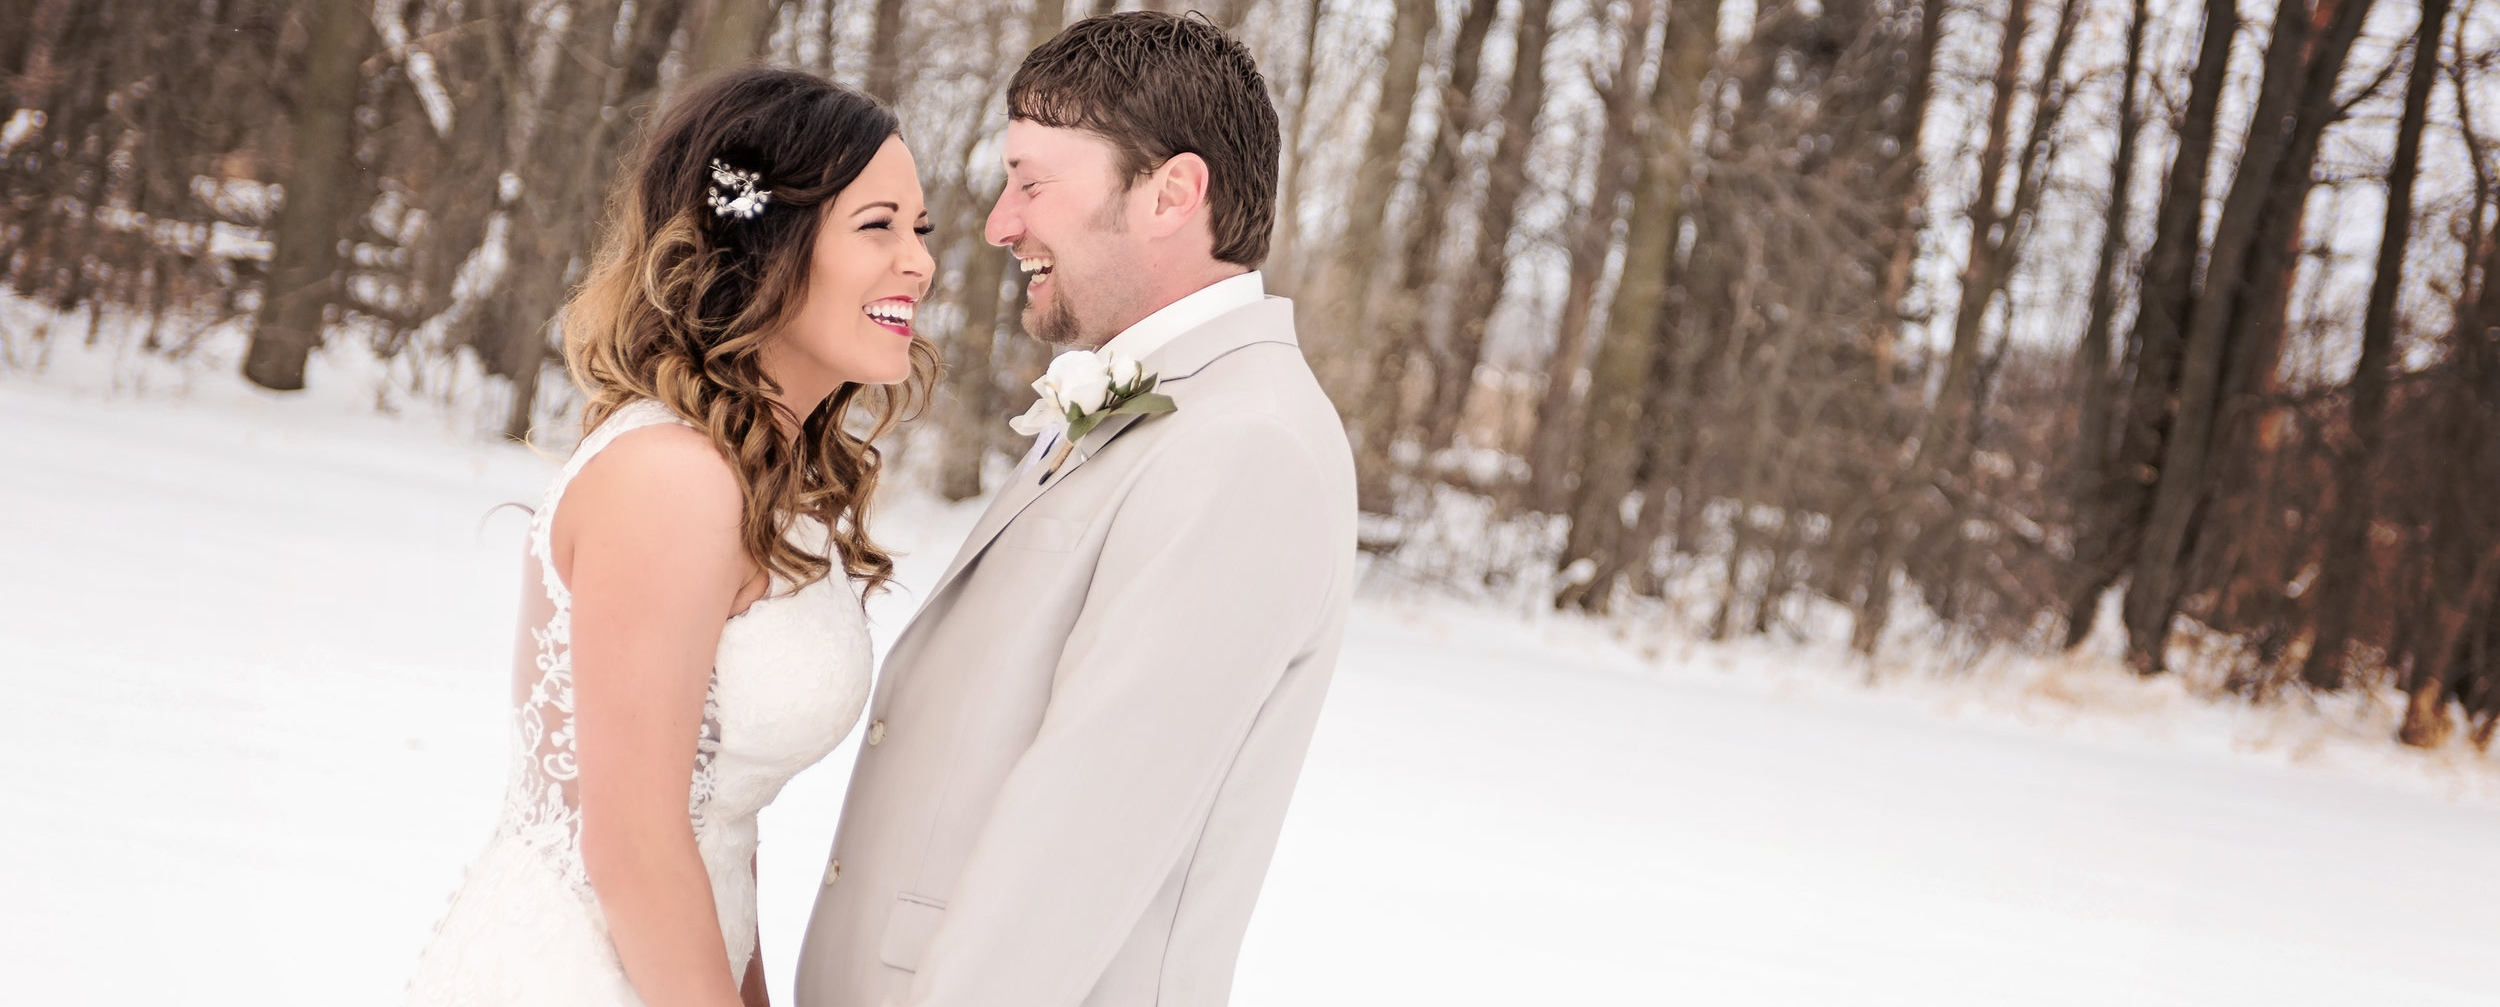 T and Z wedding_Pv_2018-Rotella Photography002.jpg